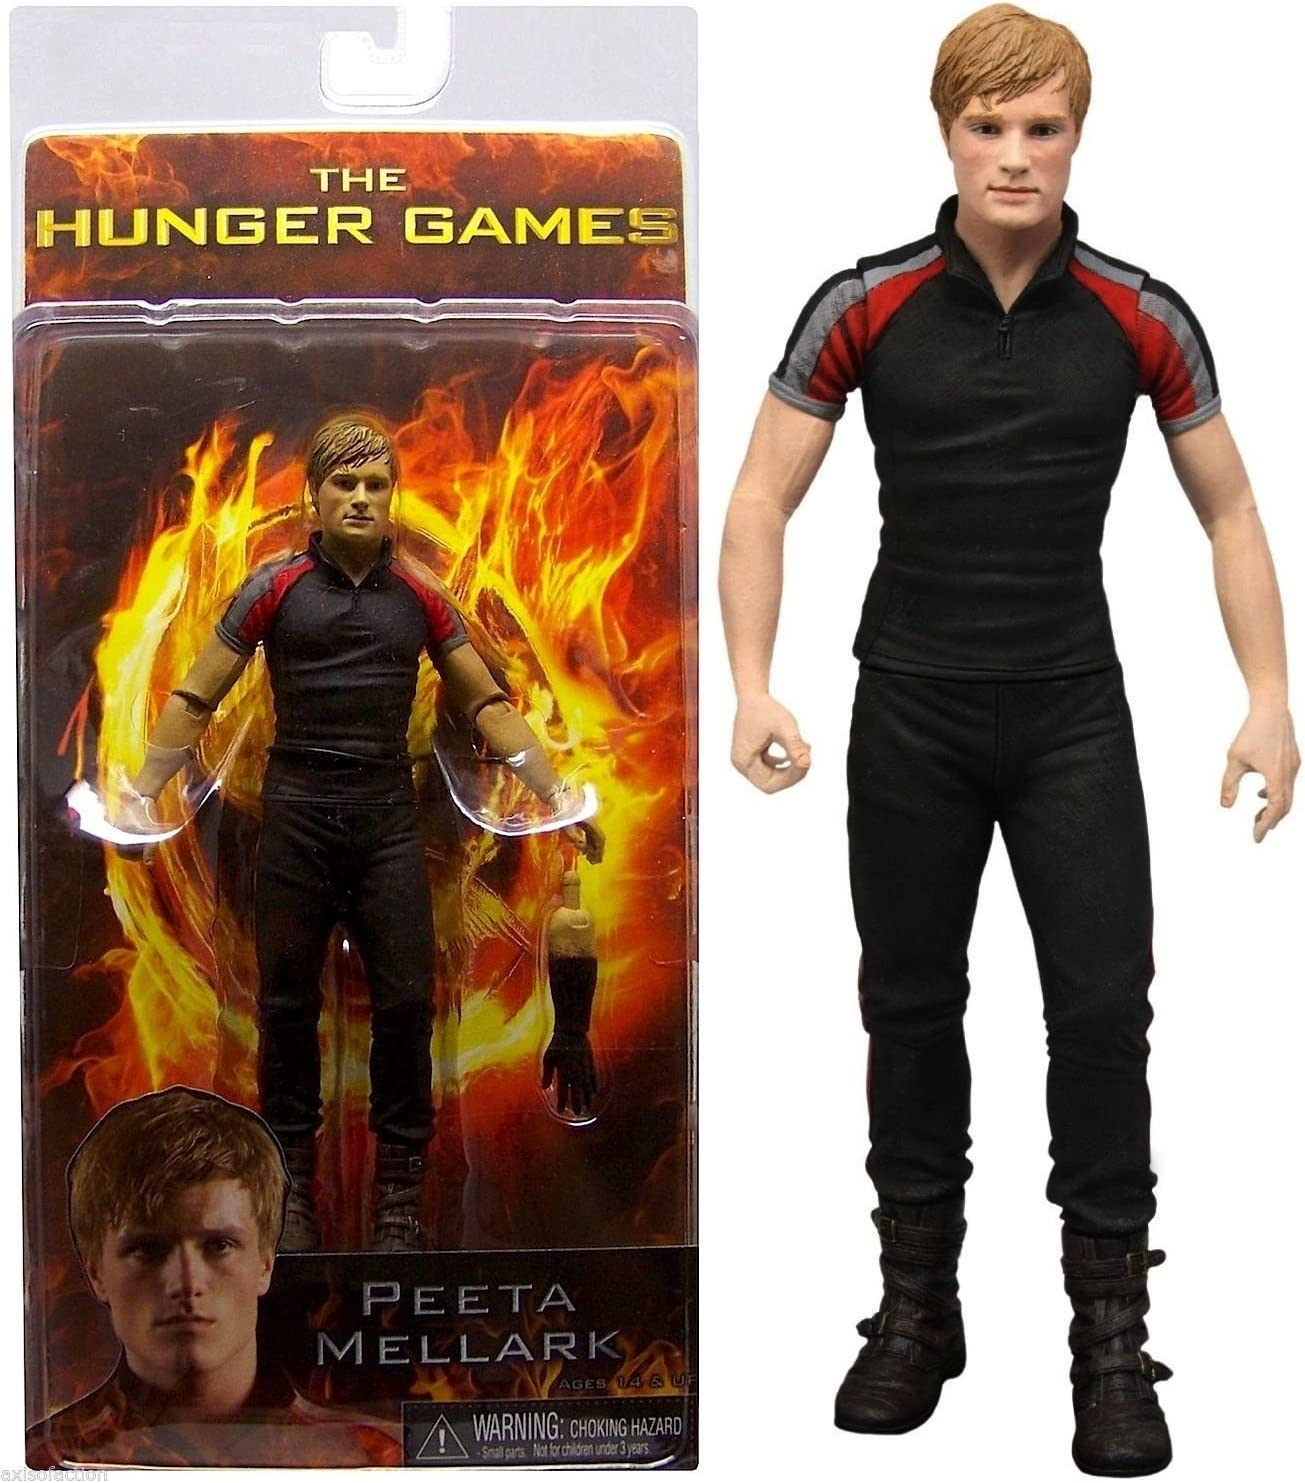 The Hunger Games Peeta Mellark Training Day Outfit NECA Reel Toys Action Figure